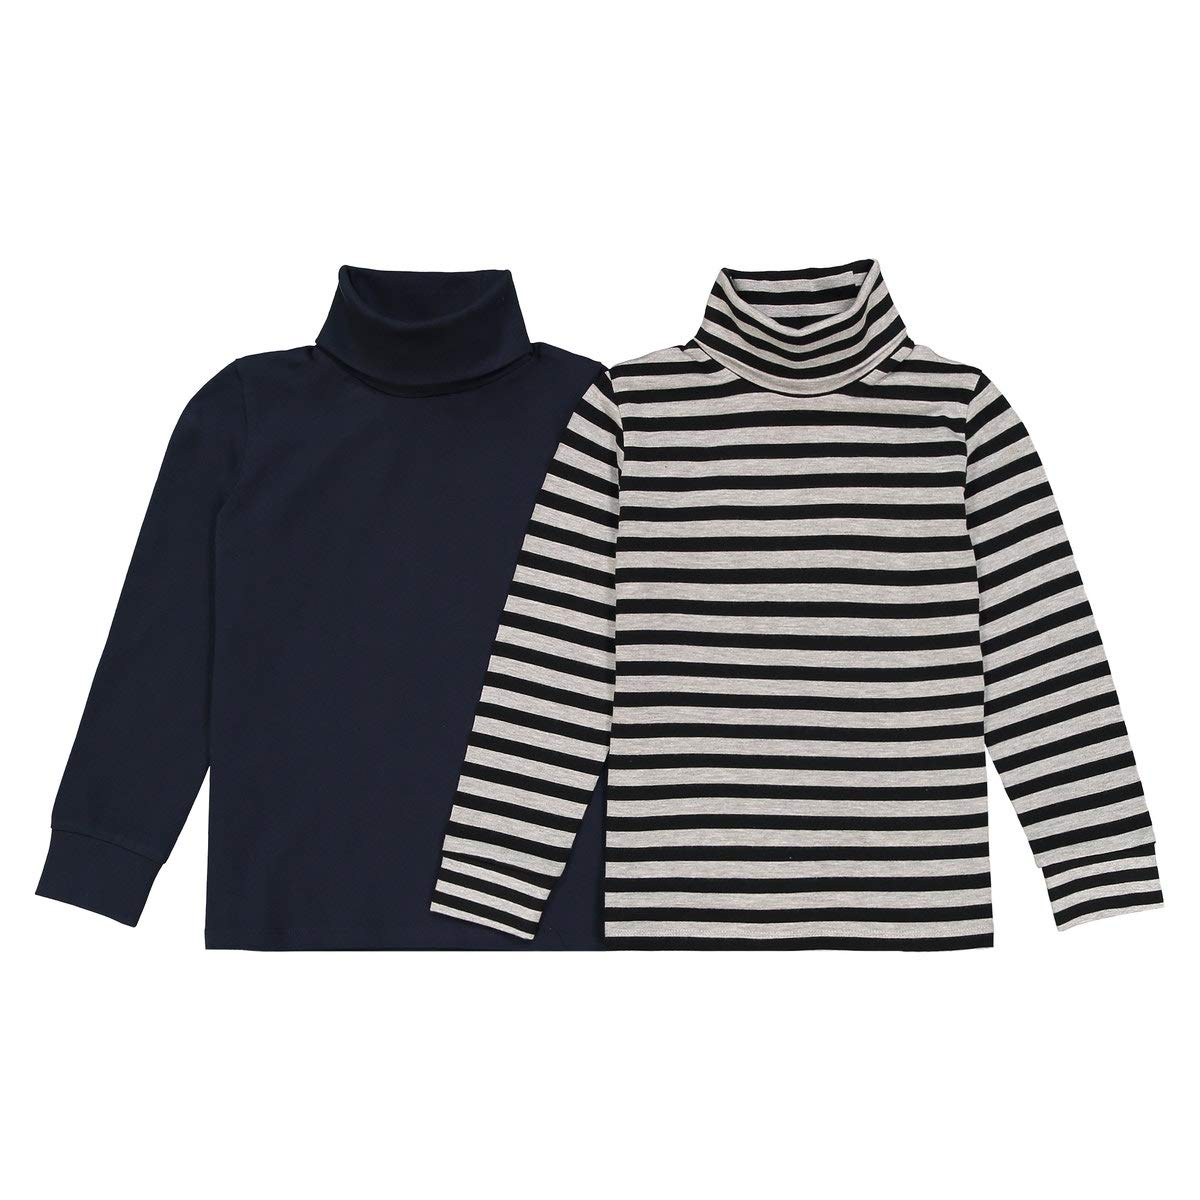 La Redoute Collections Pack of 2 Striped/Plain Polo-Neck Tops, 3-12 Years Blue Size 8 Years (126 cm)